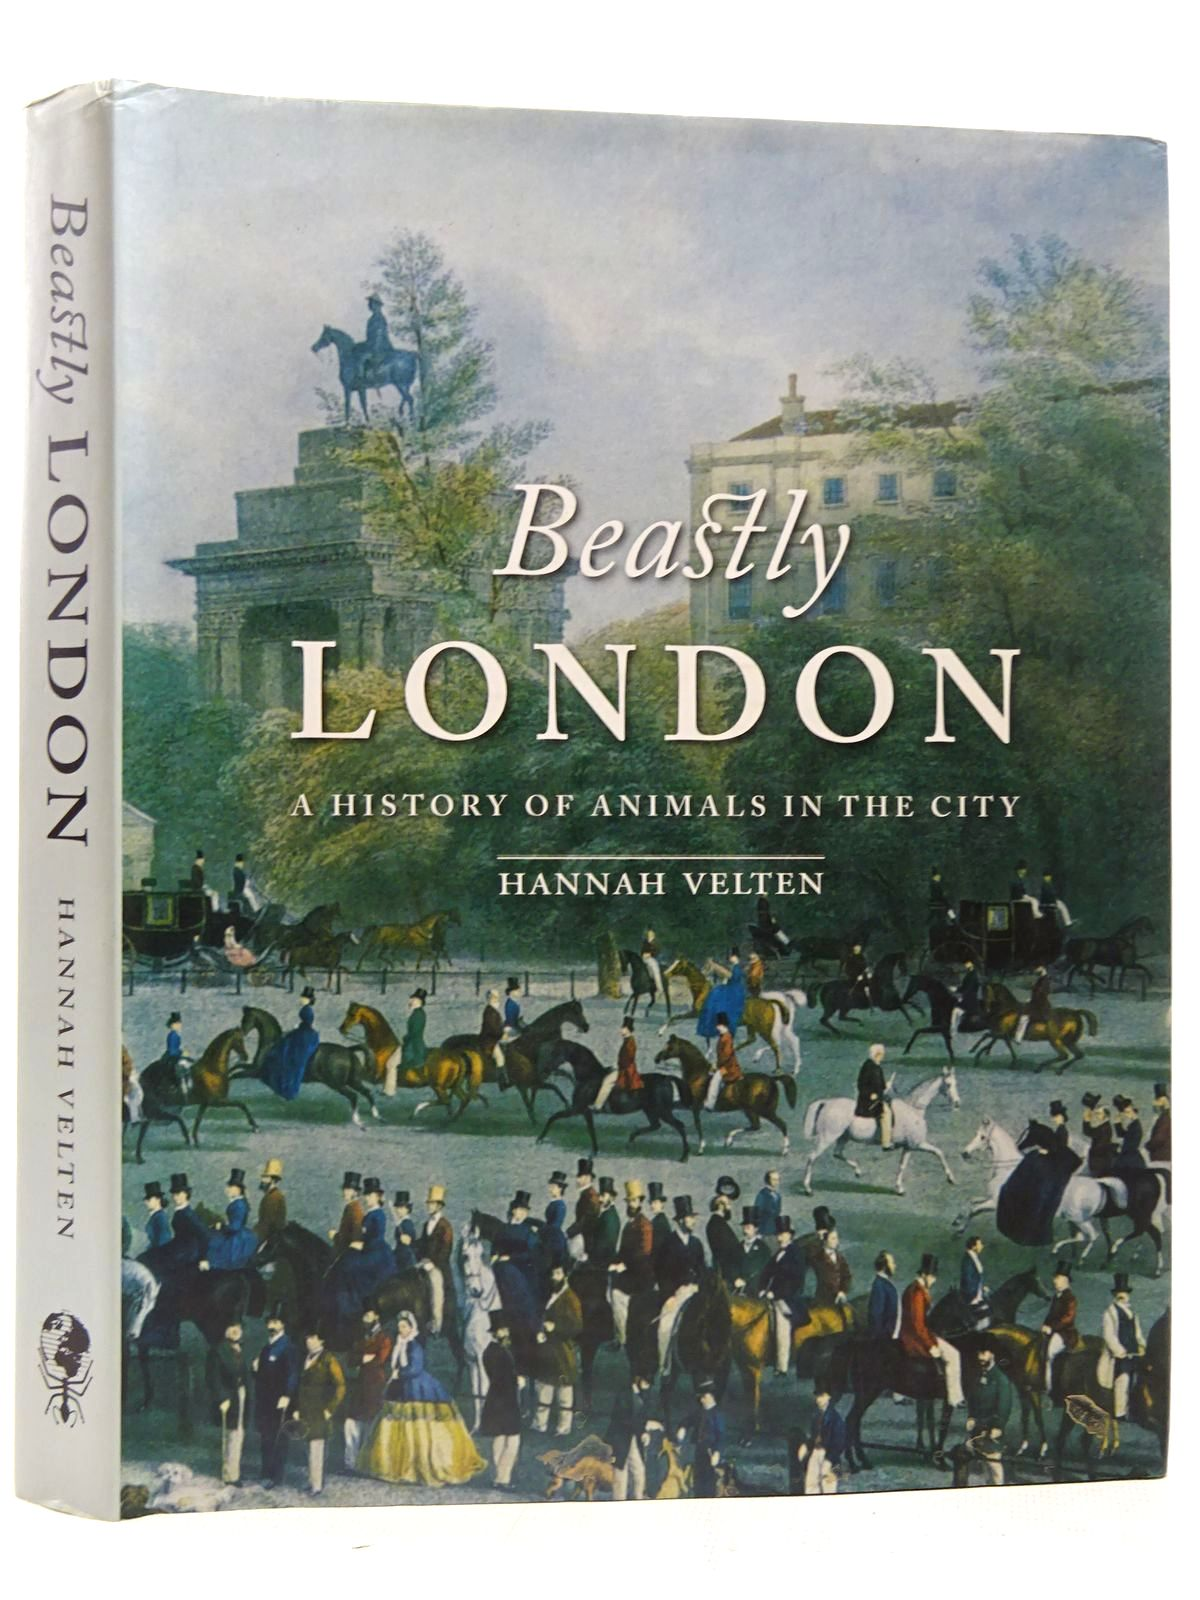 Photo of BEASTLY LONDON A HISTORY OF ANIMALS IN THE CITY written by Velten, Hannah published by Reaktion Books (STOCK CODE: 2126617)  for sale by Stella & Rose's Books